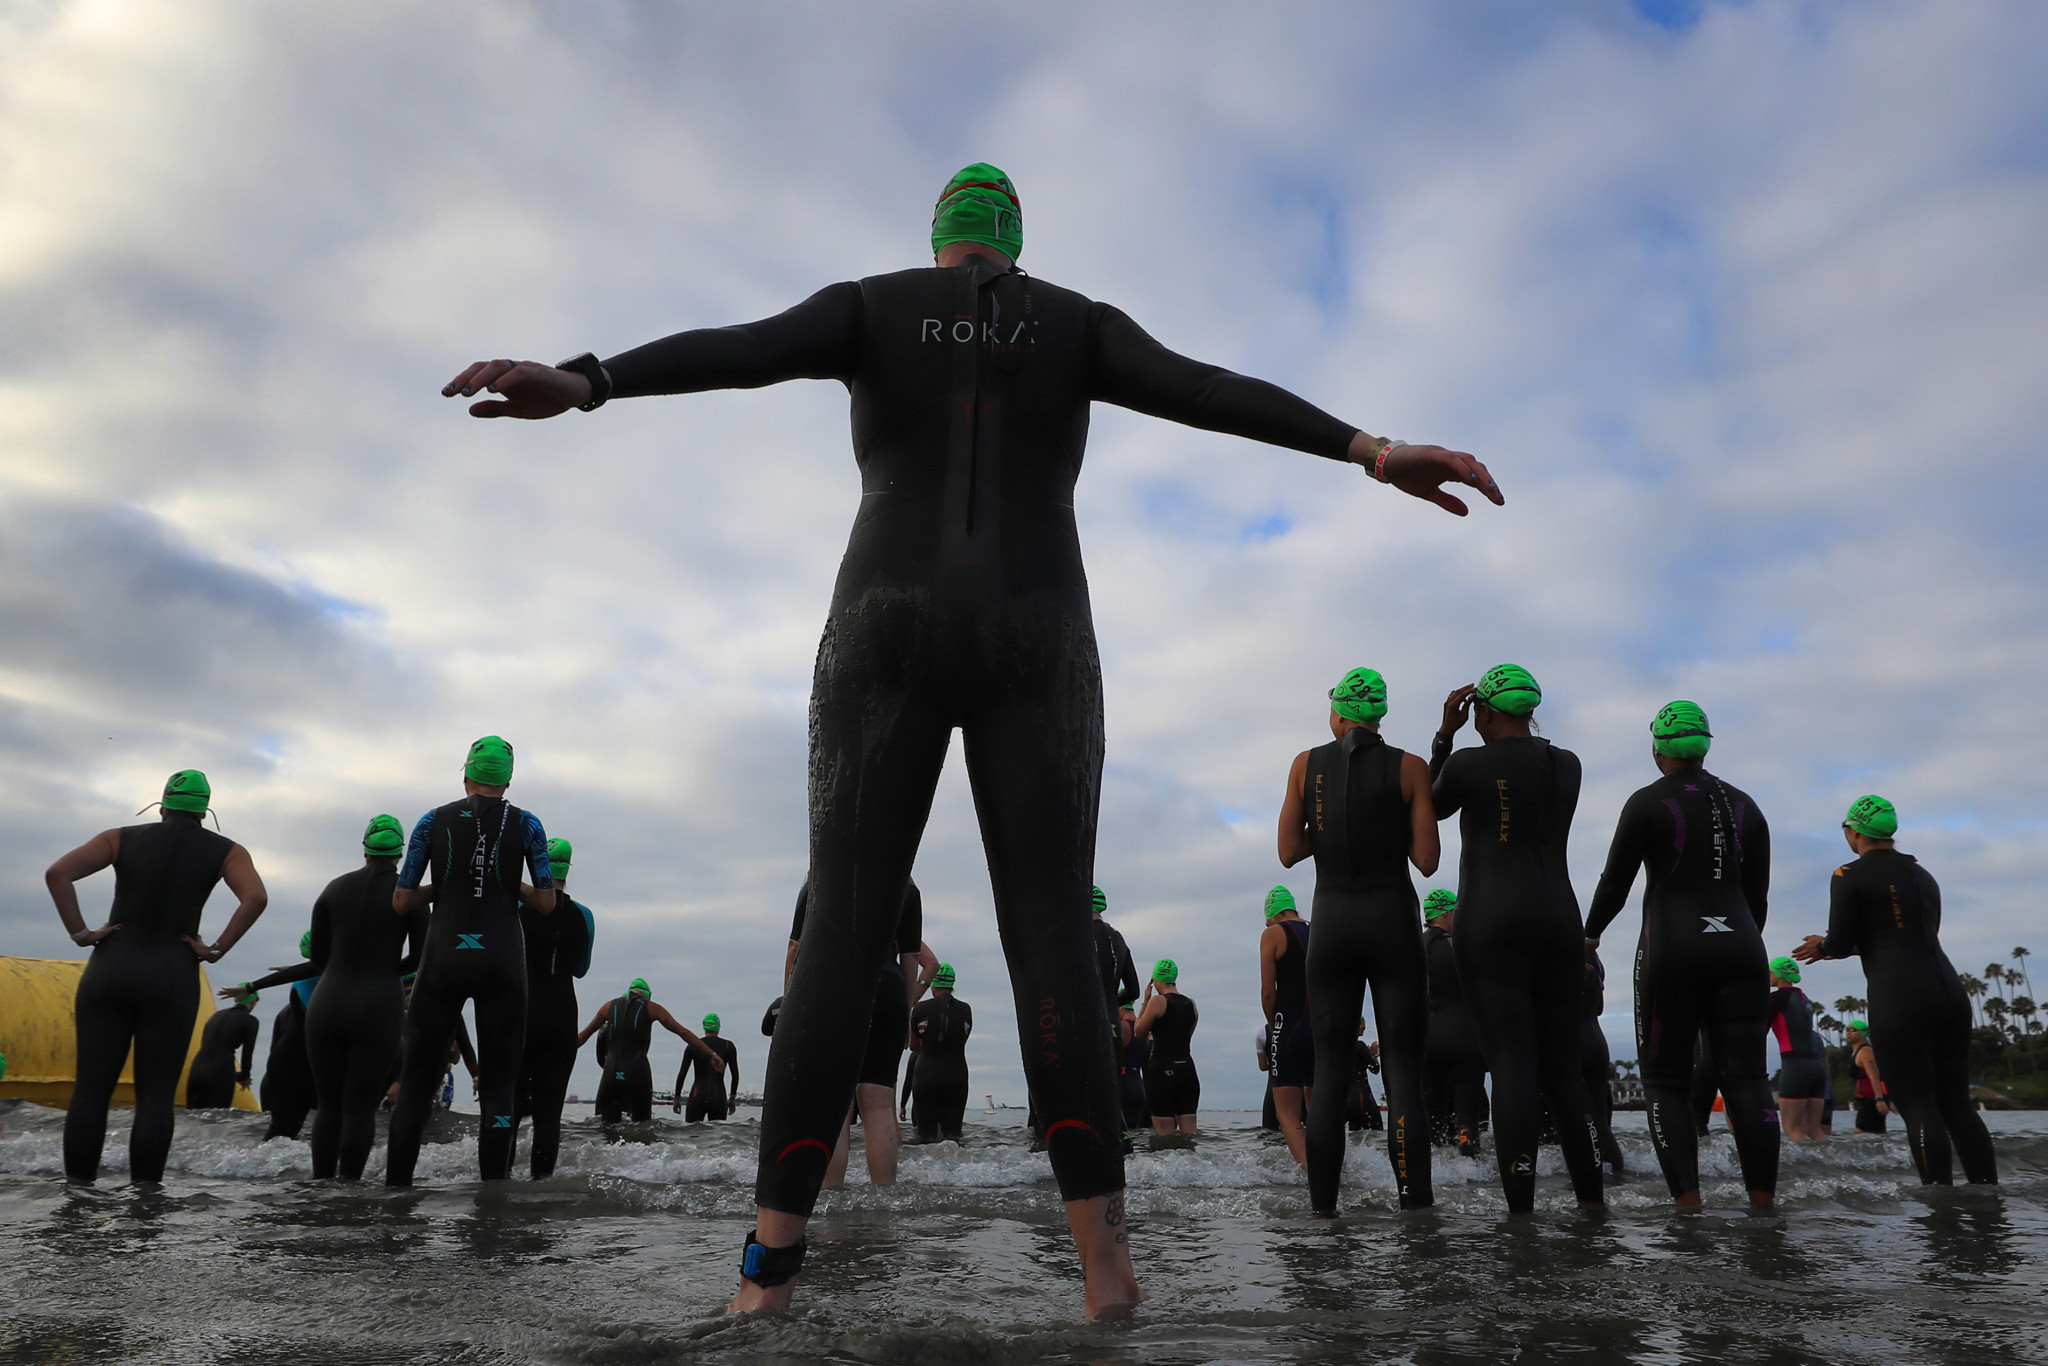 USA Triathlon to hold second edition of Toyota Legacy Triathlon on Los Angeles 2028 course